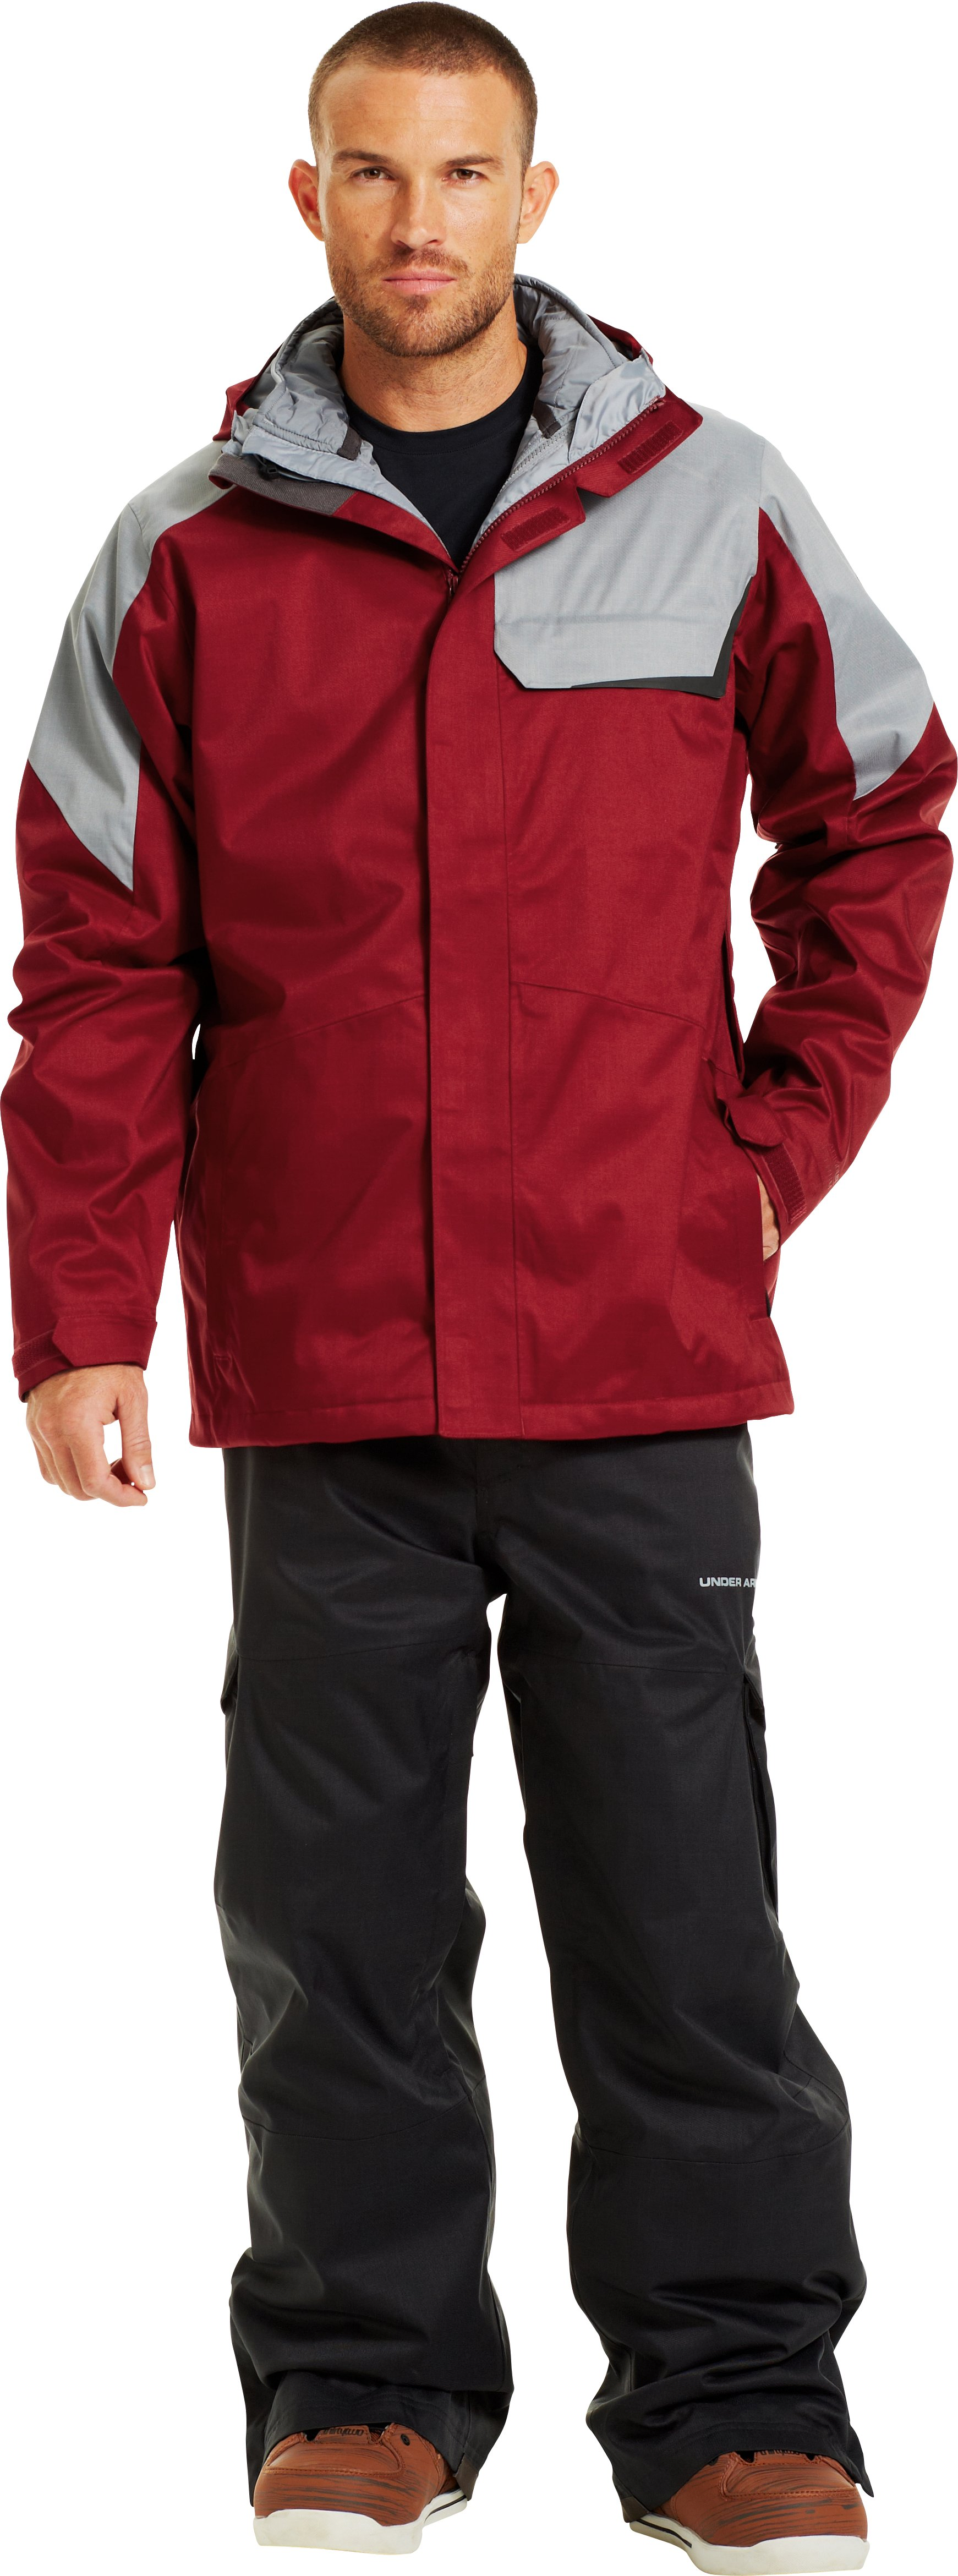 Men's ColdGear® Infrared Tripper 3-in-1 Jacket, CORDOVA